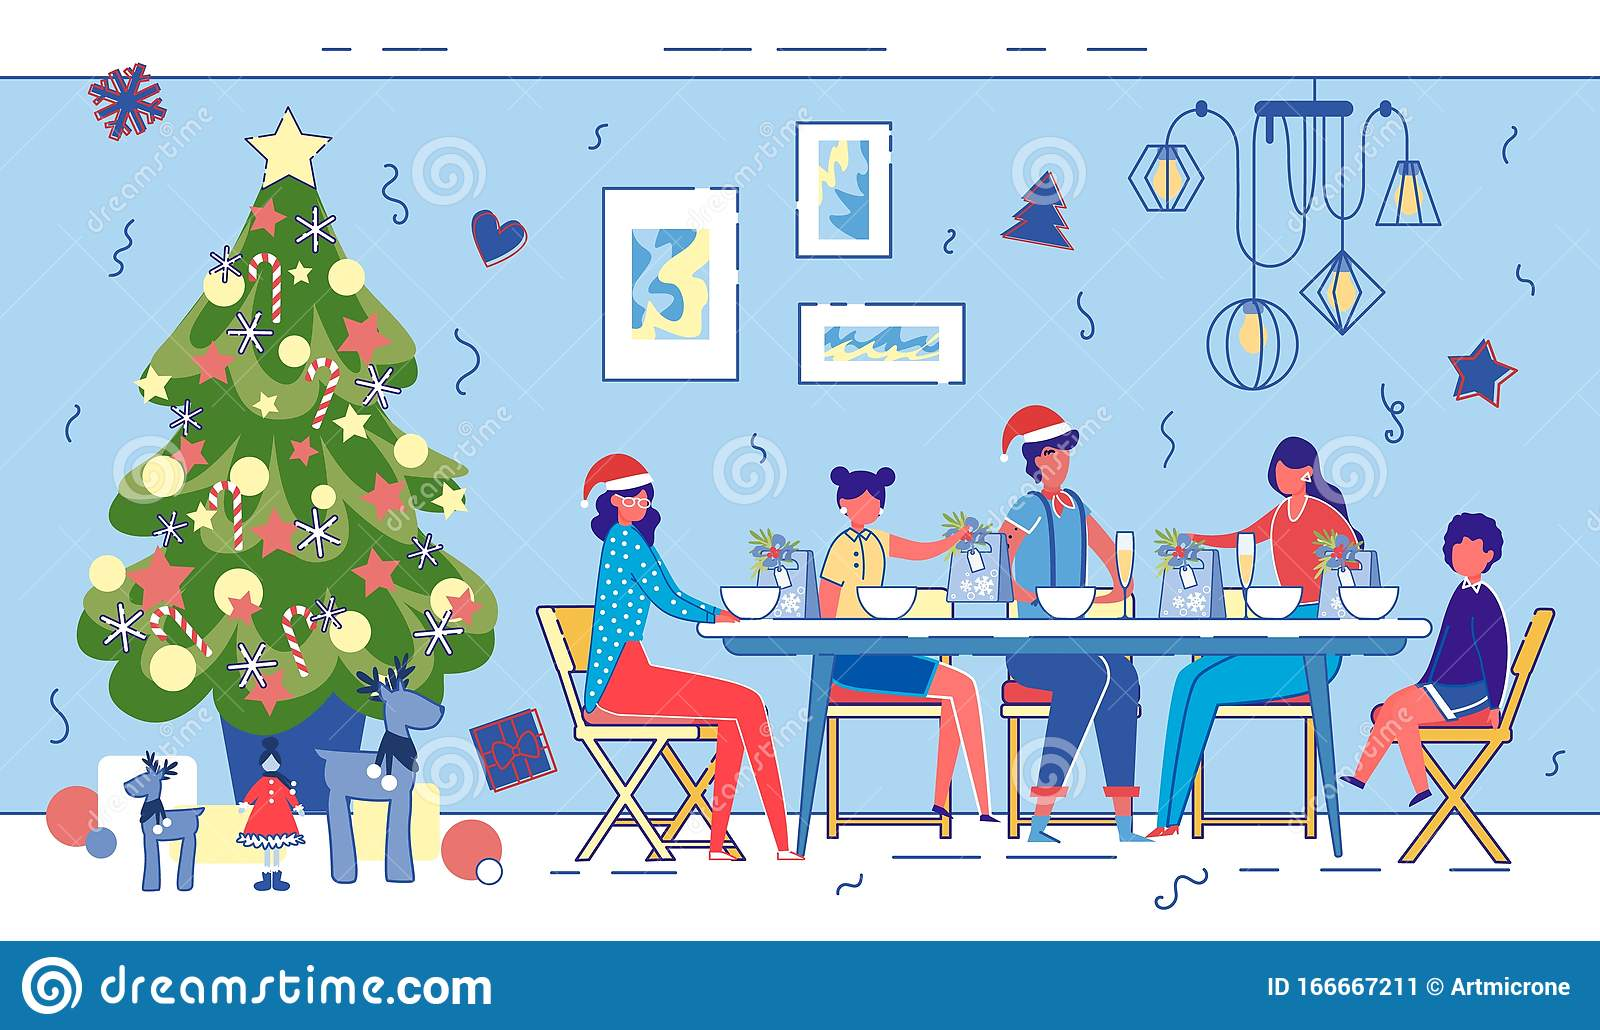 Joint Family Cartoon Stock Illustrations 313 Joint Family Cartoon Stock Illustrations Vectors Clipart Dreamstime